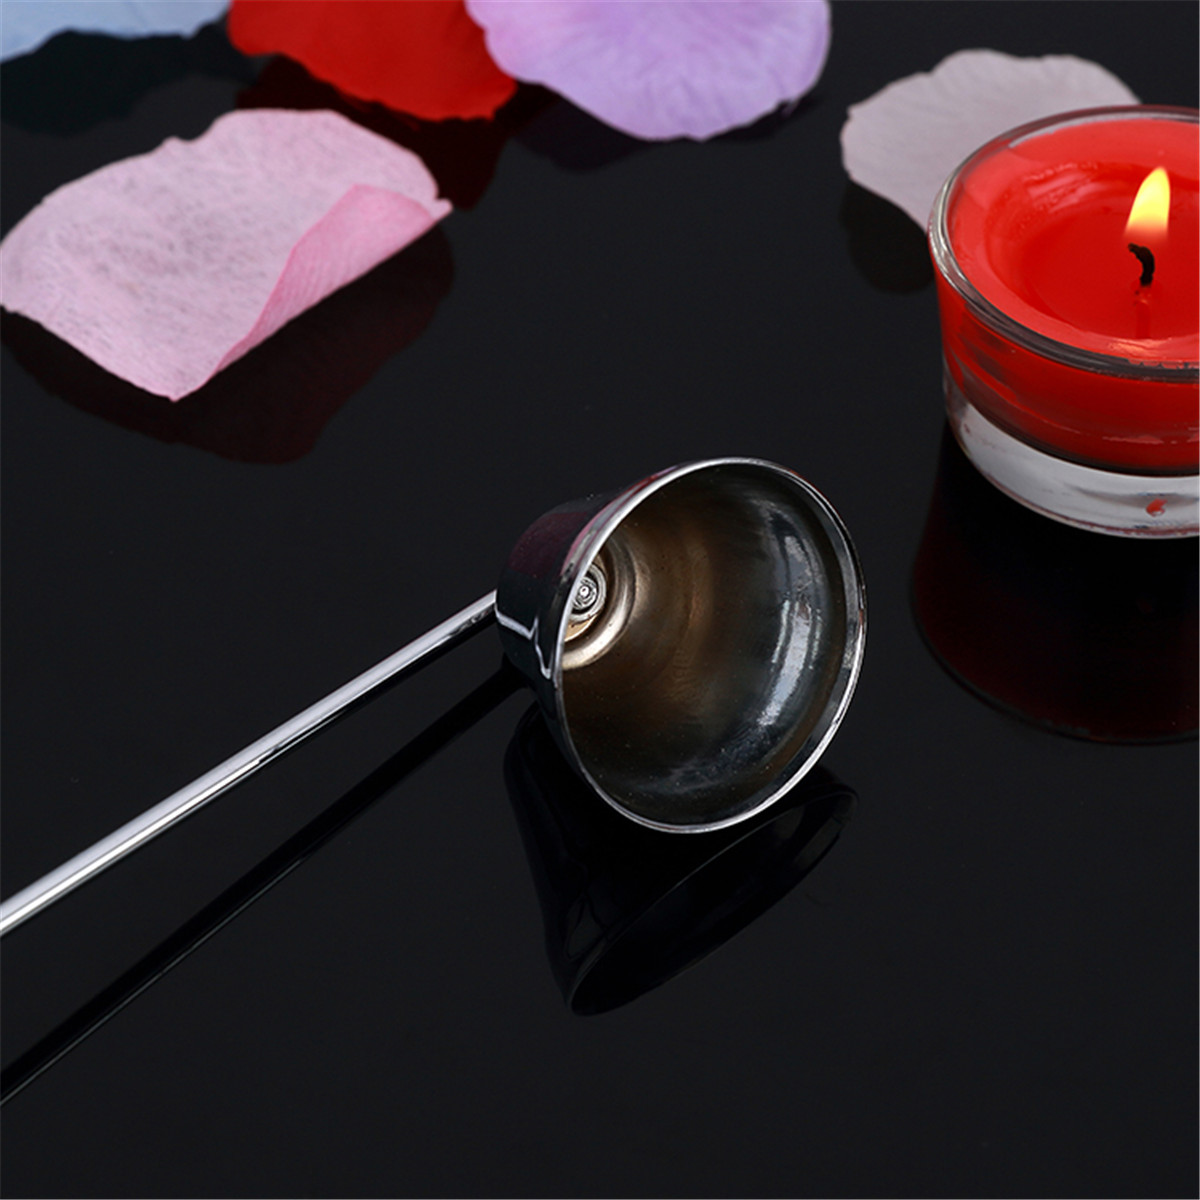 Stainless Steel Candle Snuffer Silver Long Extinguisher for Tea Light Candle Tool